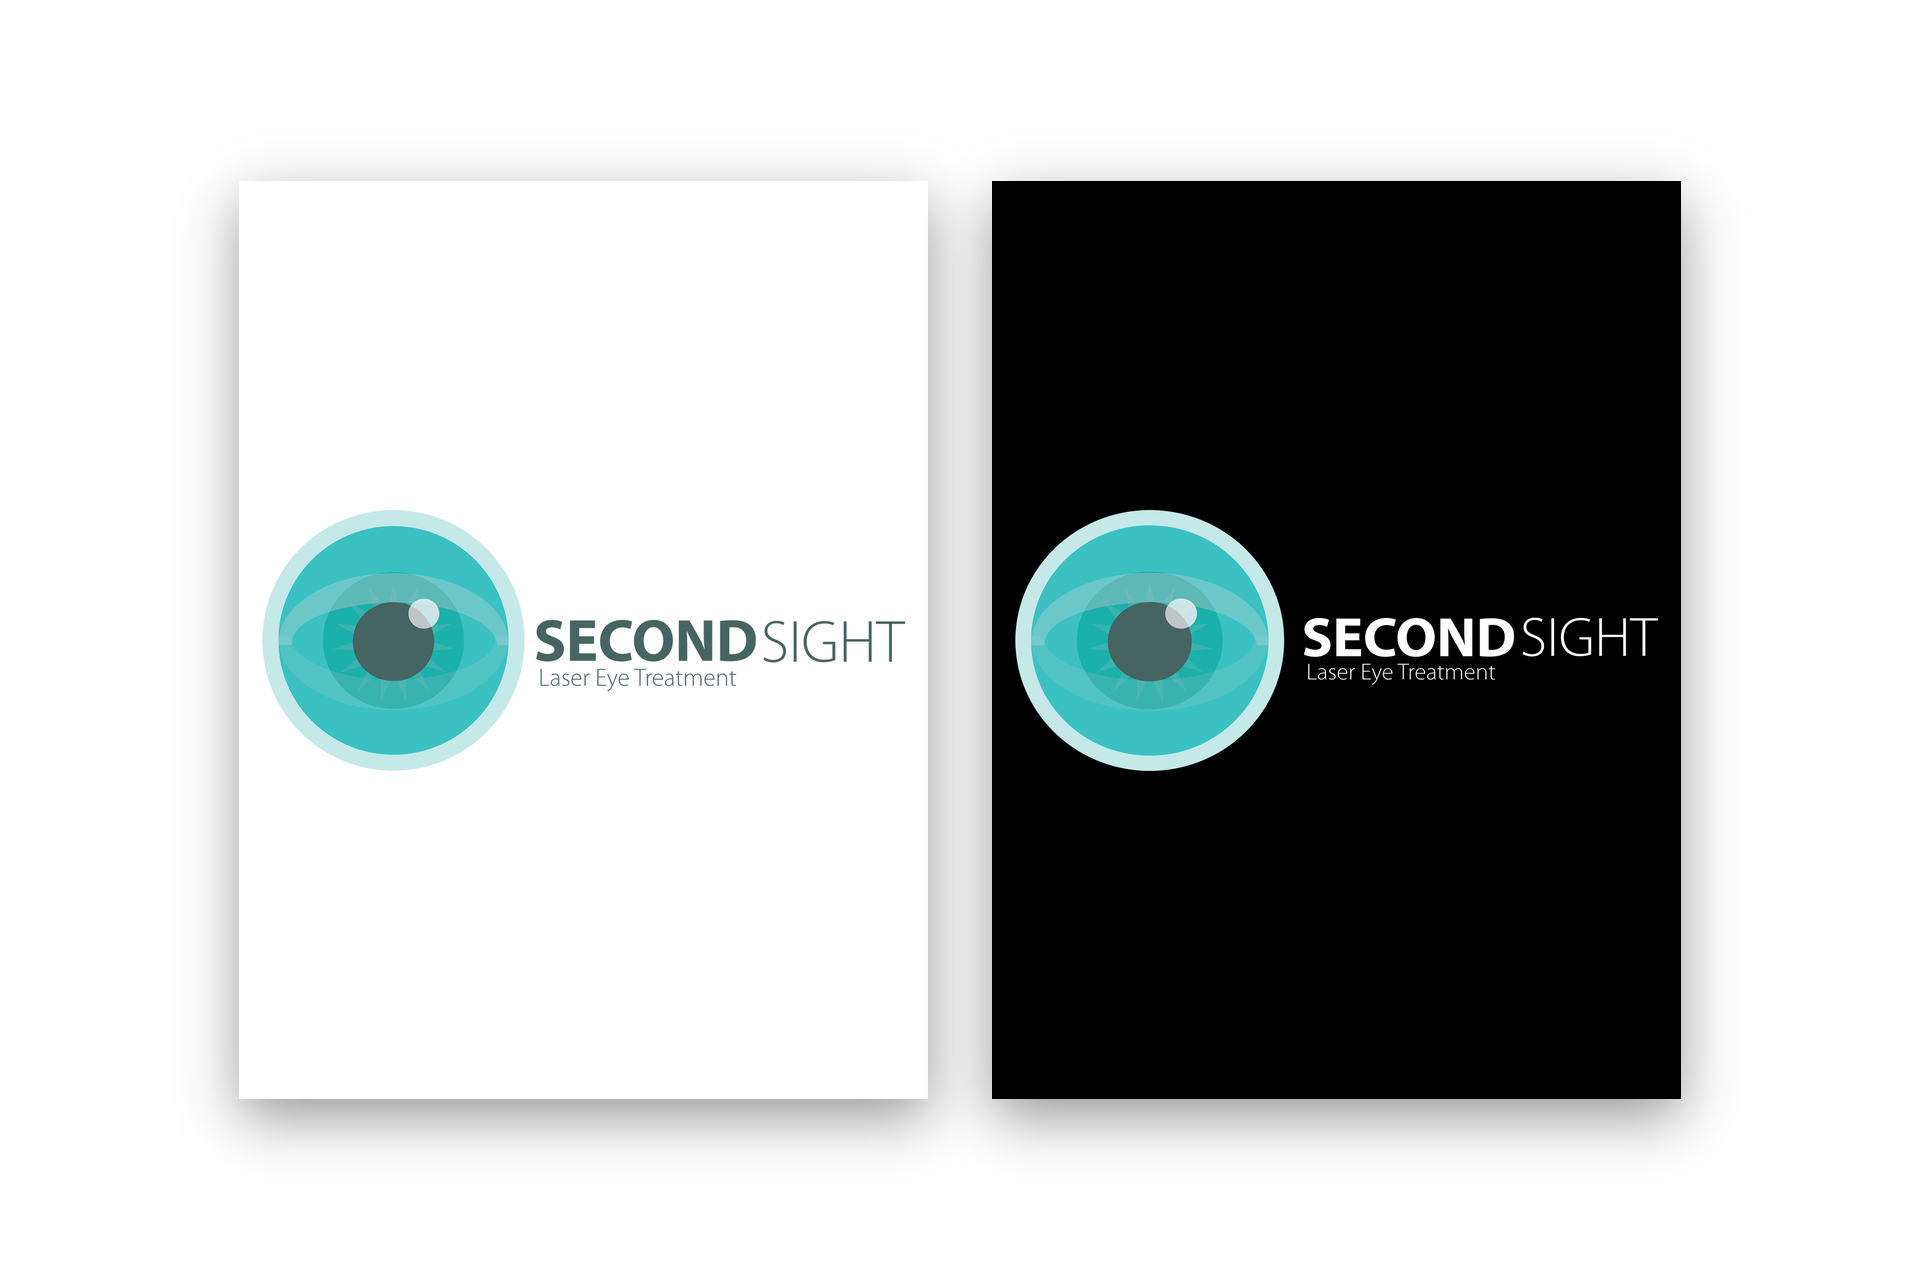 Second Sight Logo Design and Brand Identity